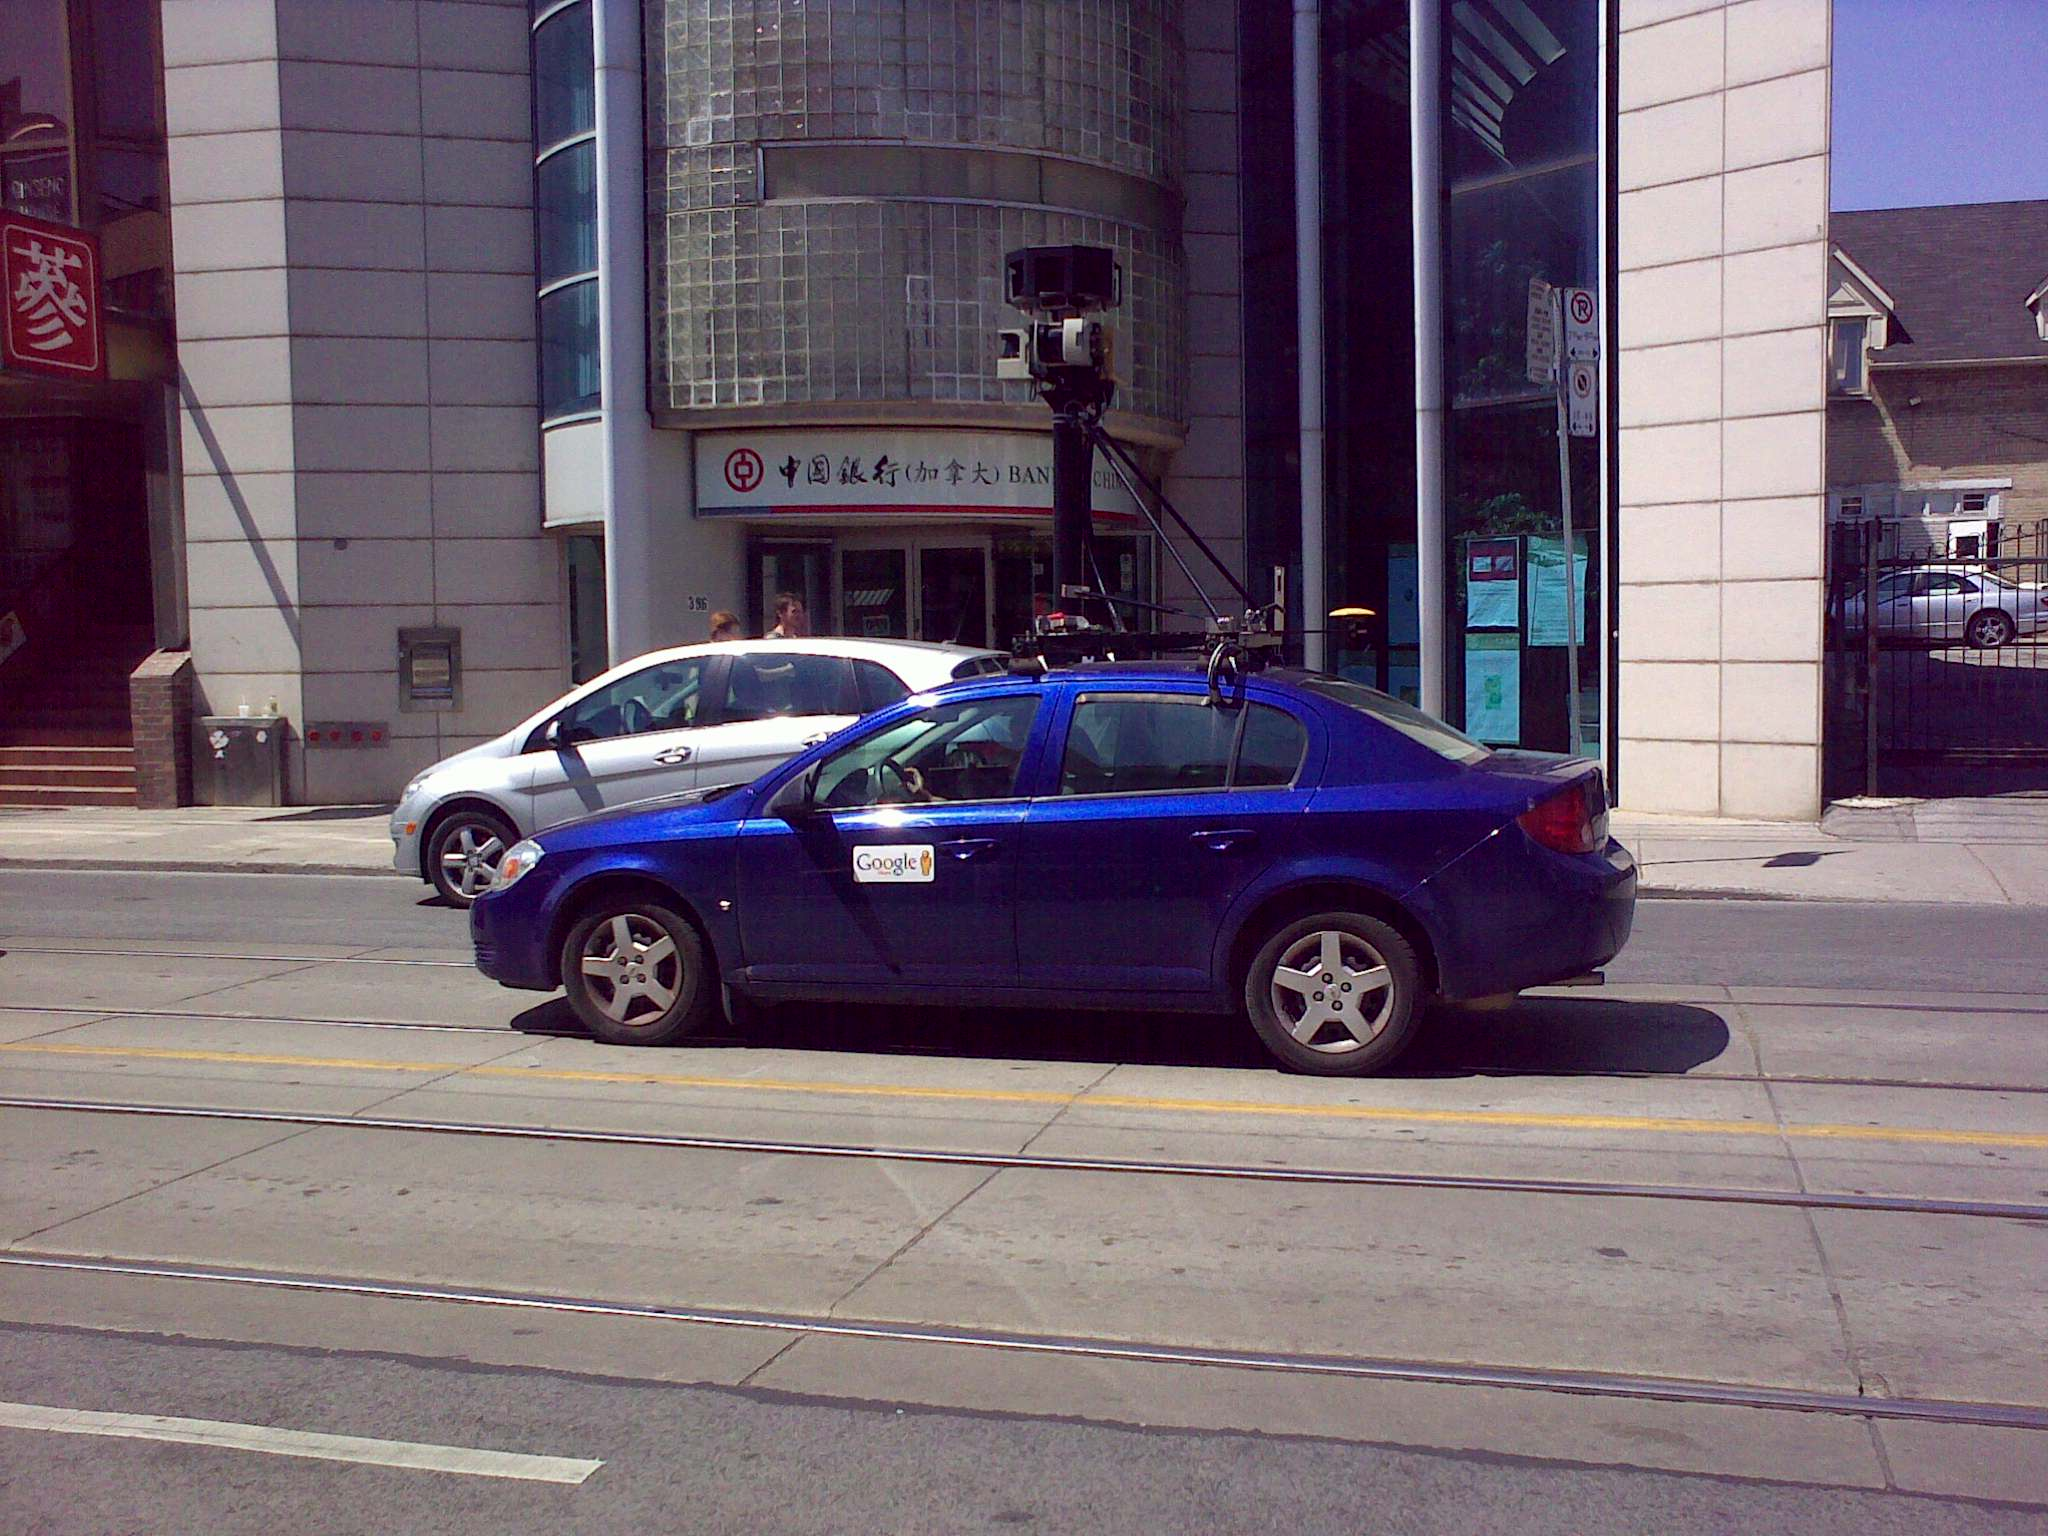 Google Street View in Canada - Wikipedia on google earth camera car, google street view car, maps car with camera,